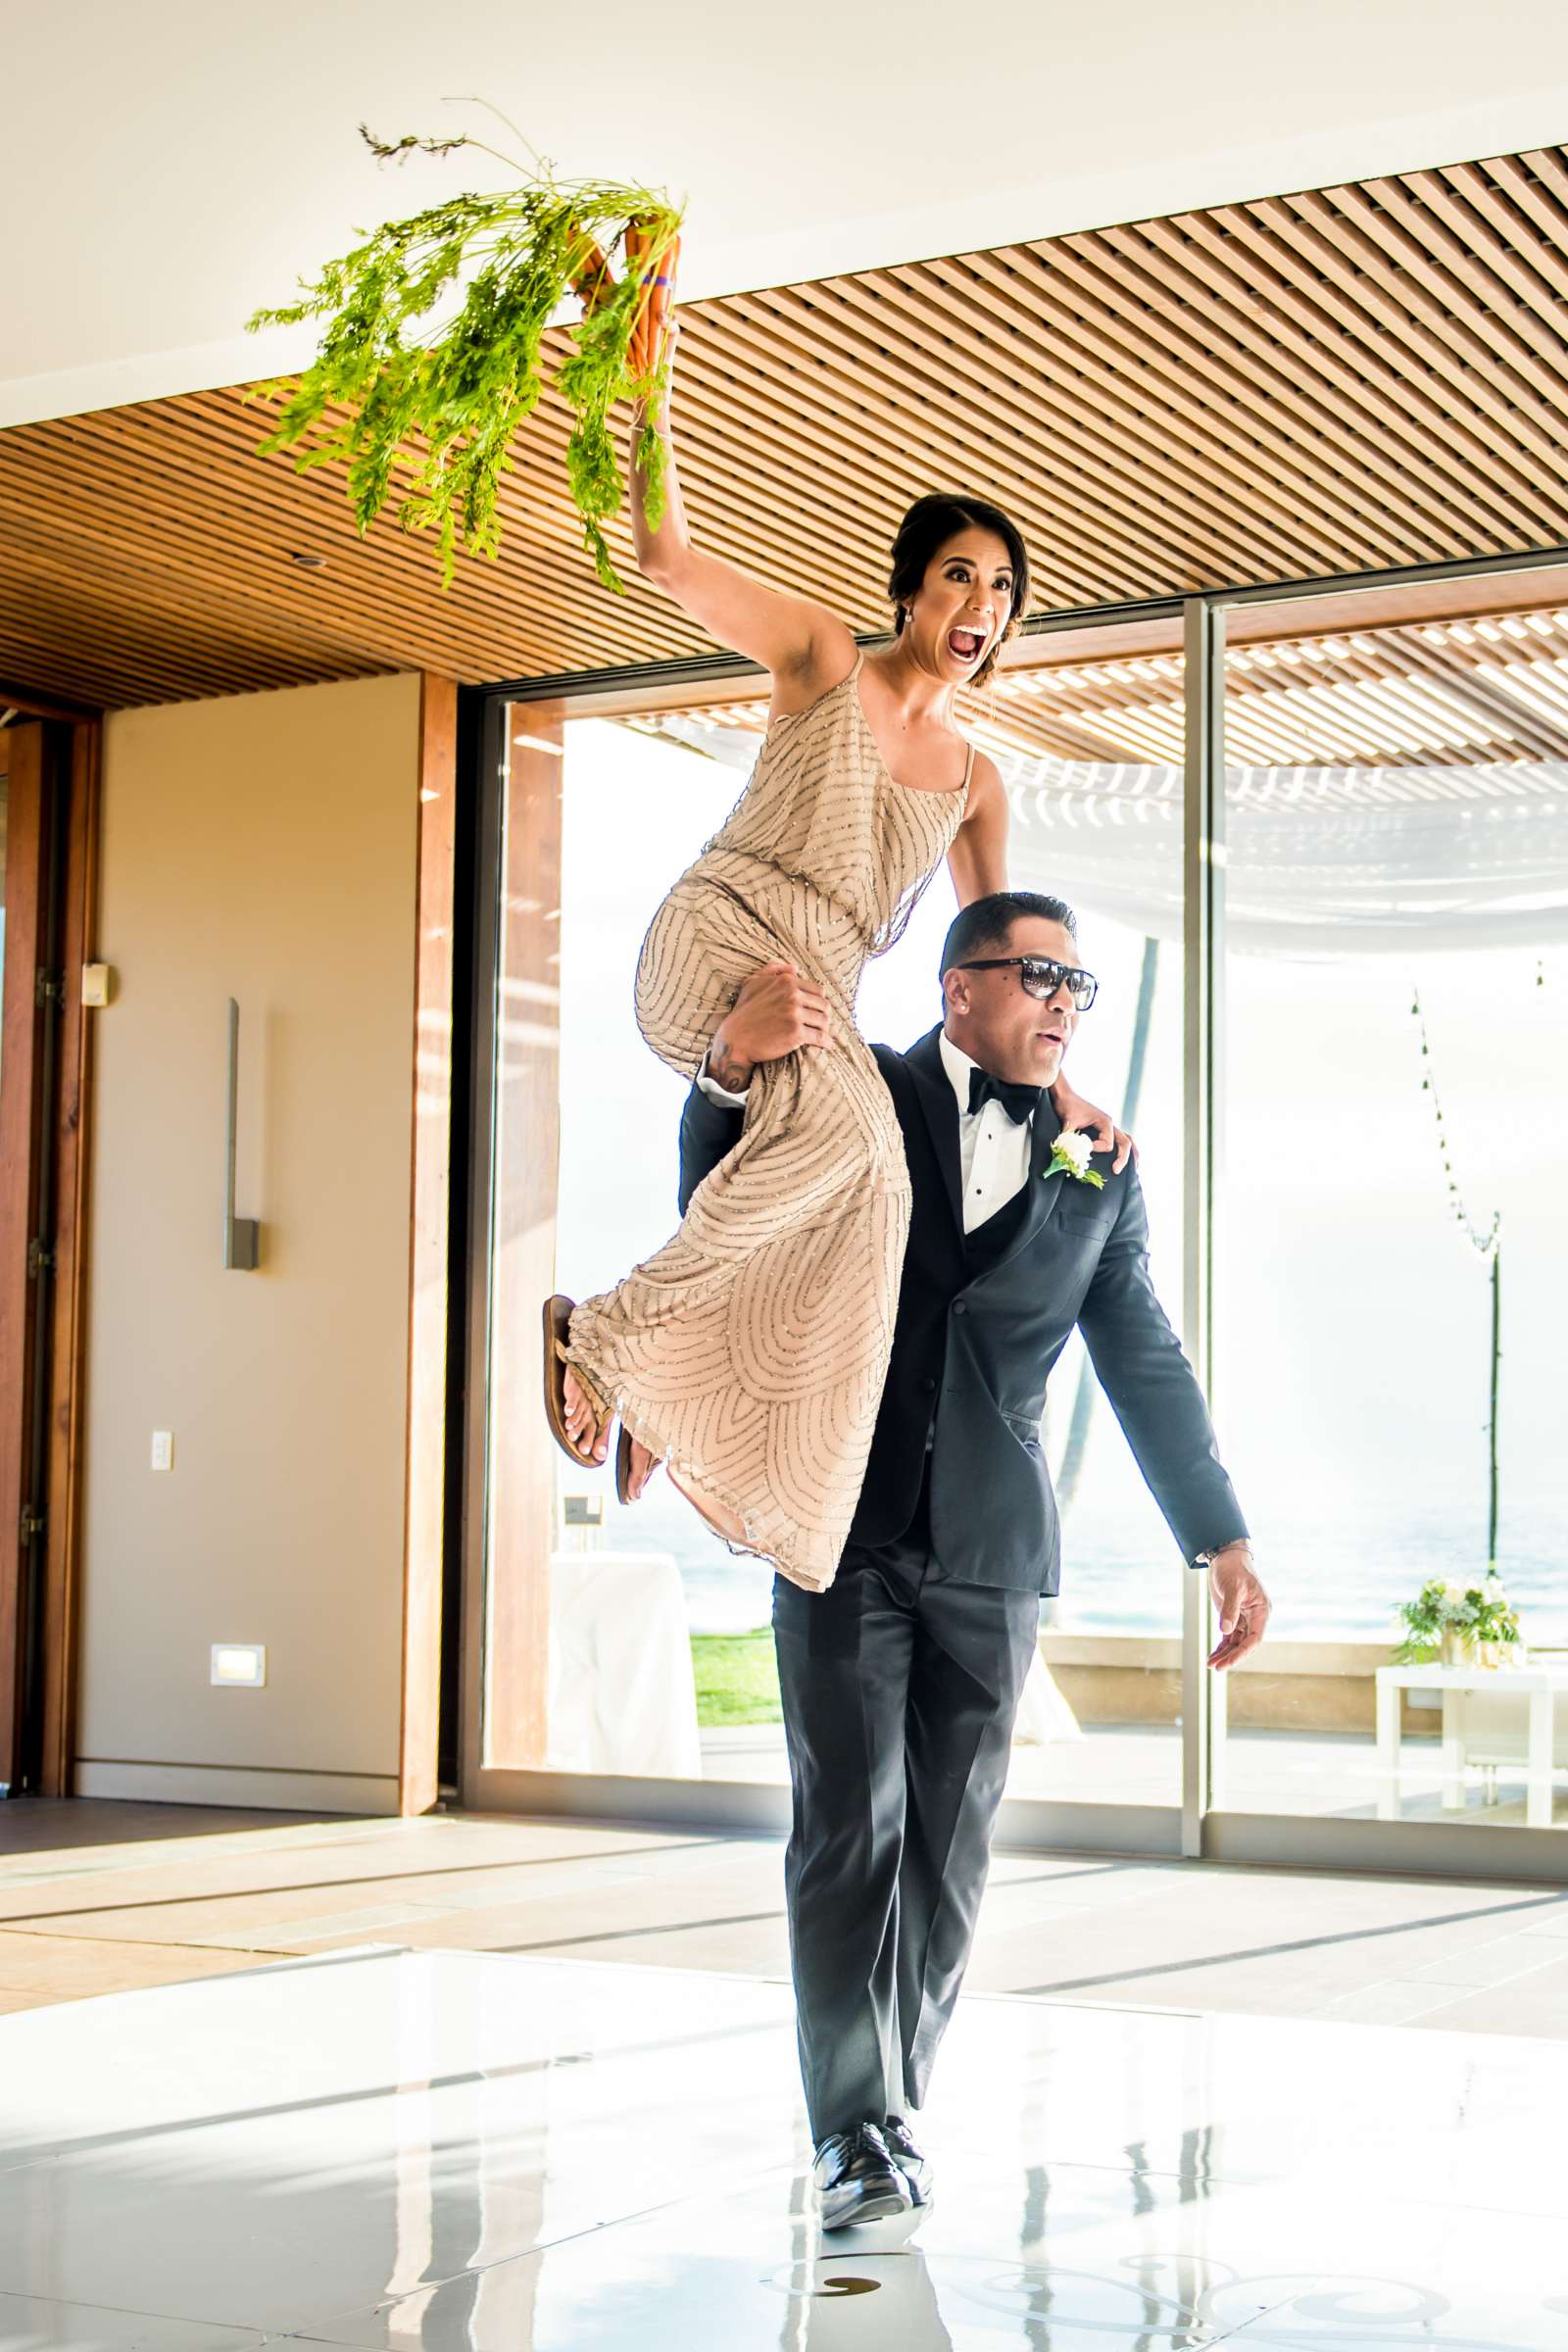 Scripps Seaside Forum Wedding coordinated by Lavish Weddings, Cindy and Justin Wedding Photo #381849 by True Photography